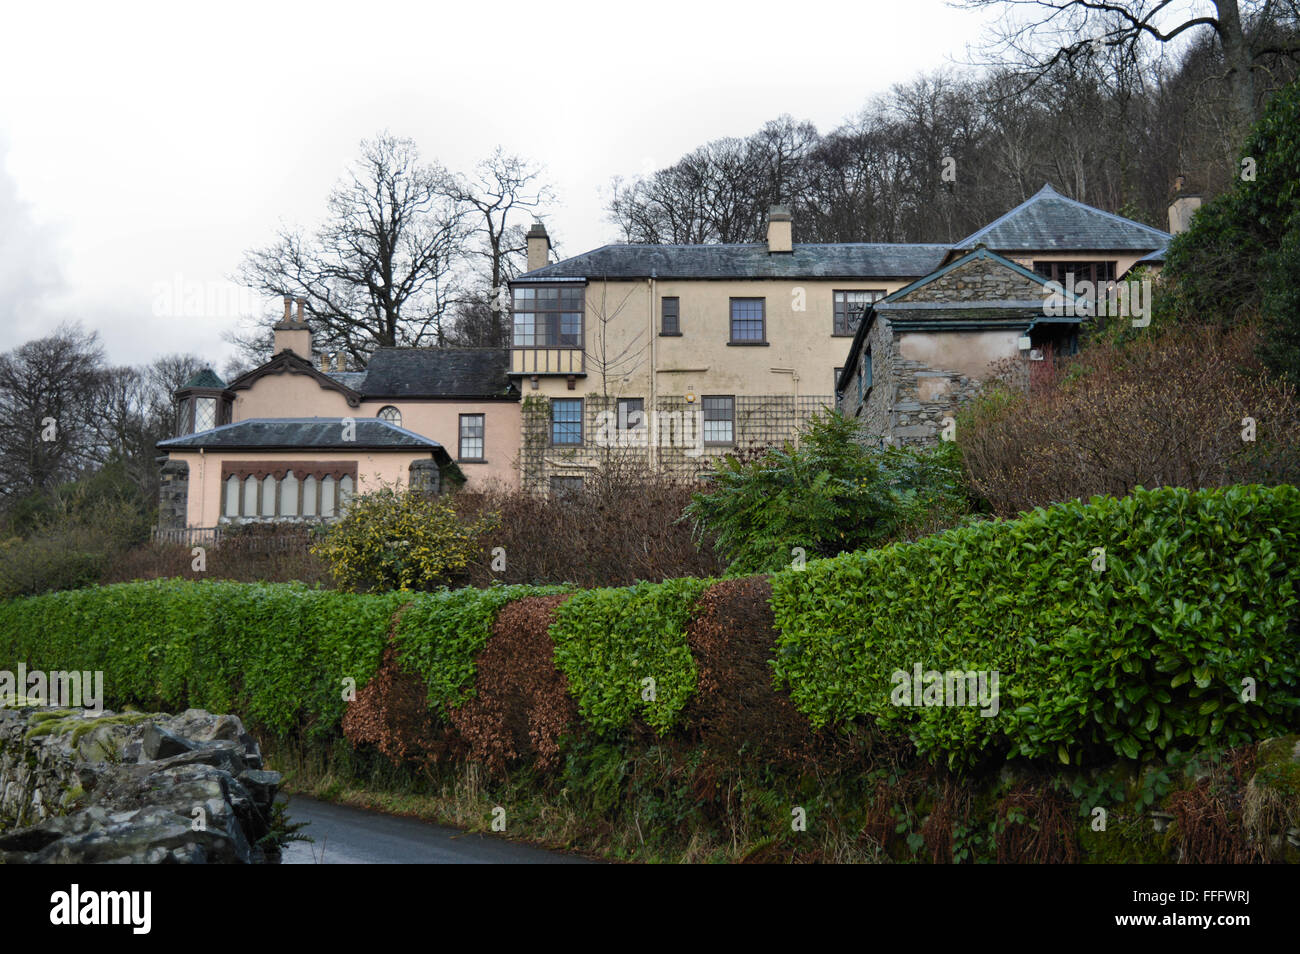 Brantwood House Coniston Lake District - Stock Image